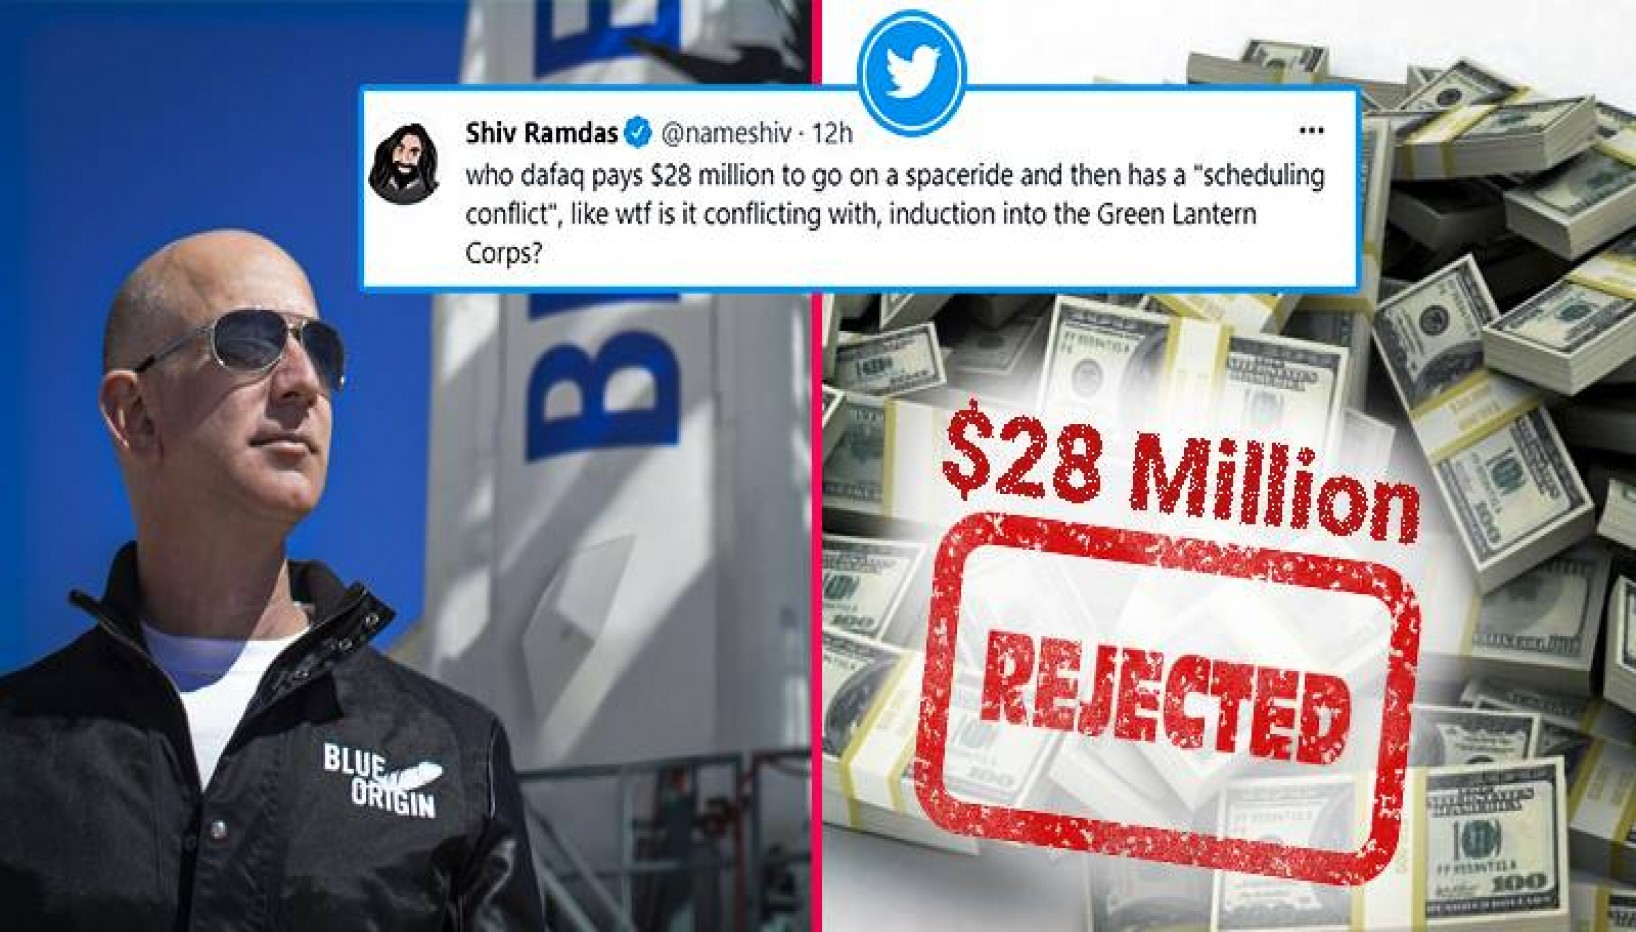 Man Can't Fly To Space With Jeff Bezos Even After Spending $28 Million, Twitter Reacts